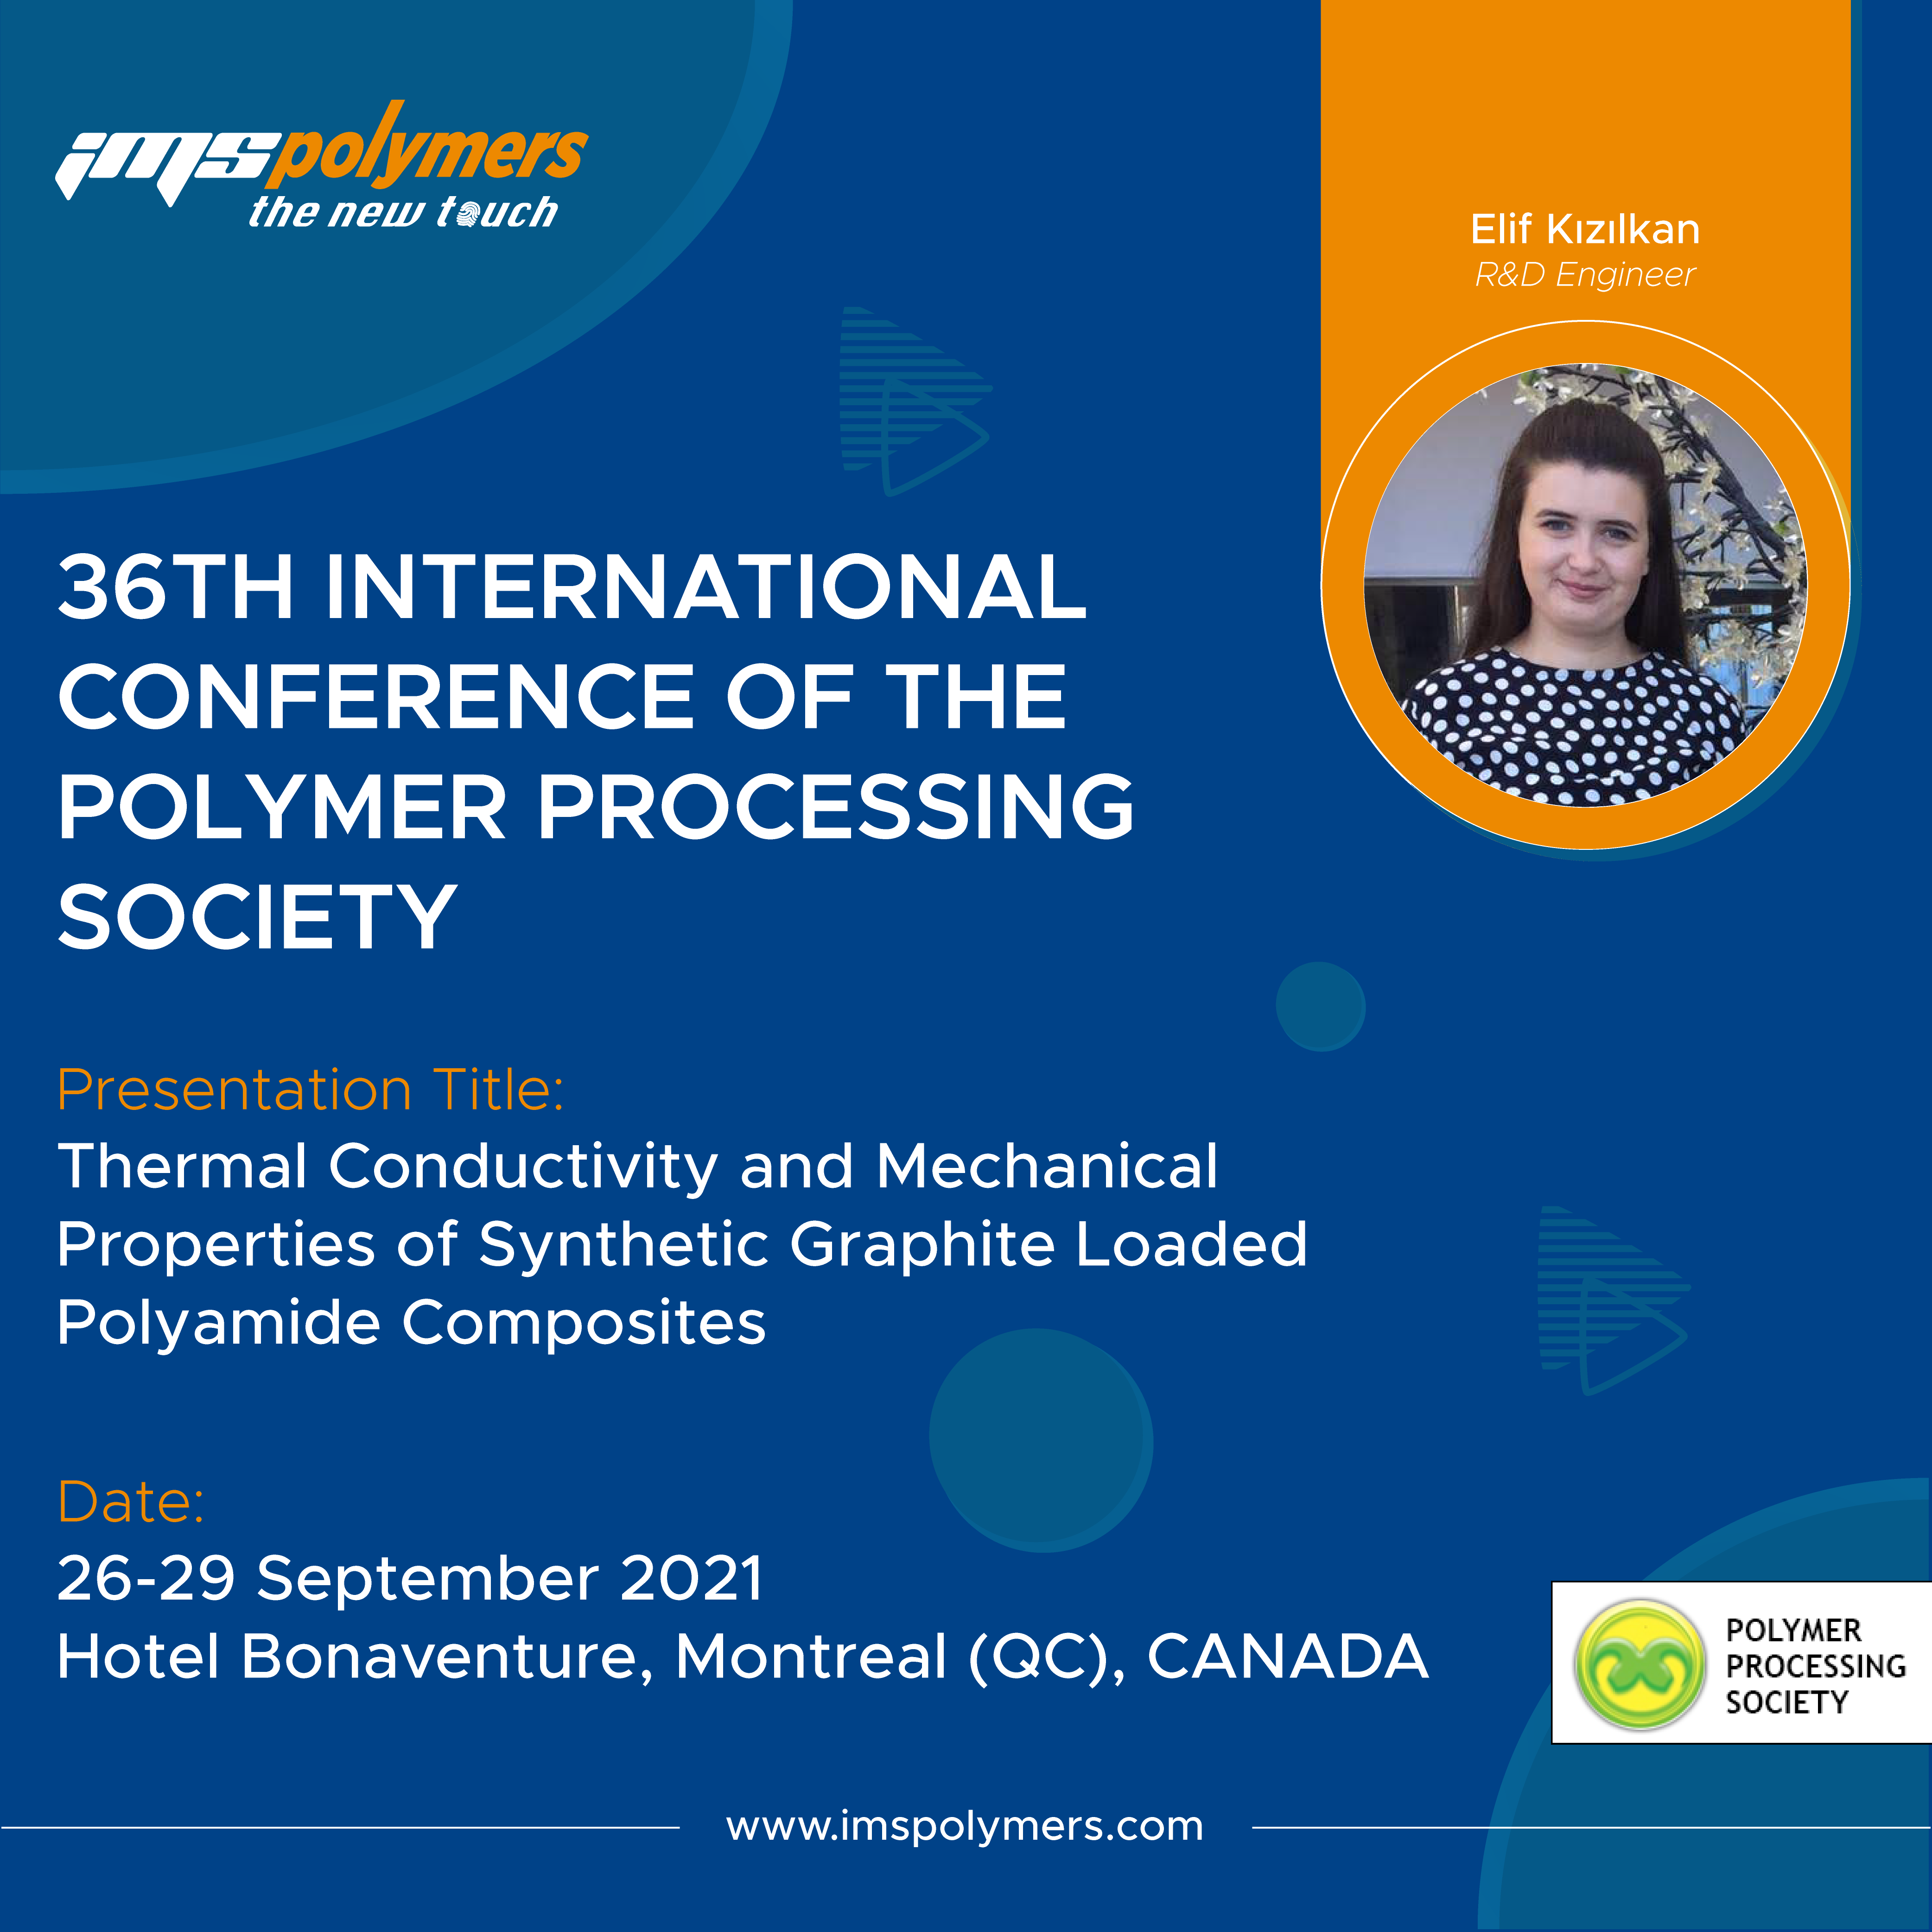 36th International Conference of the Polymer Processing Society